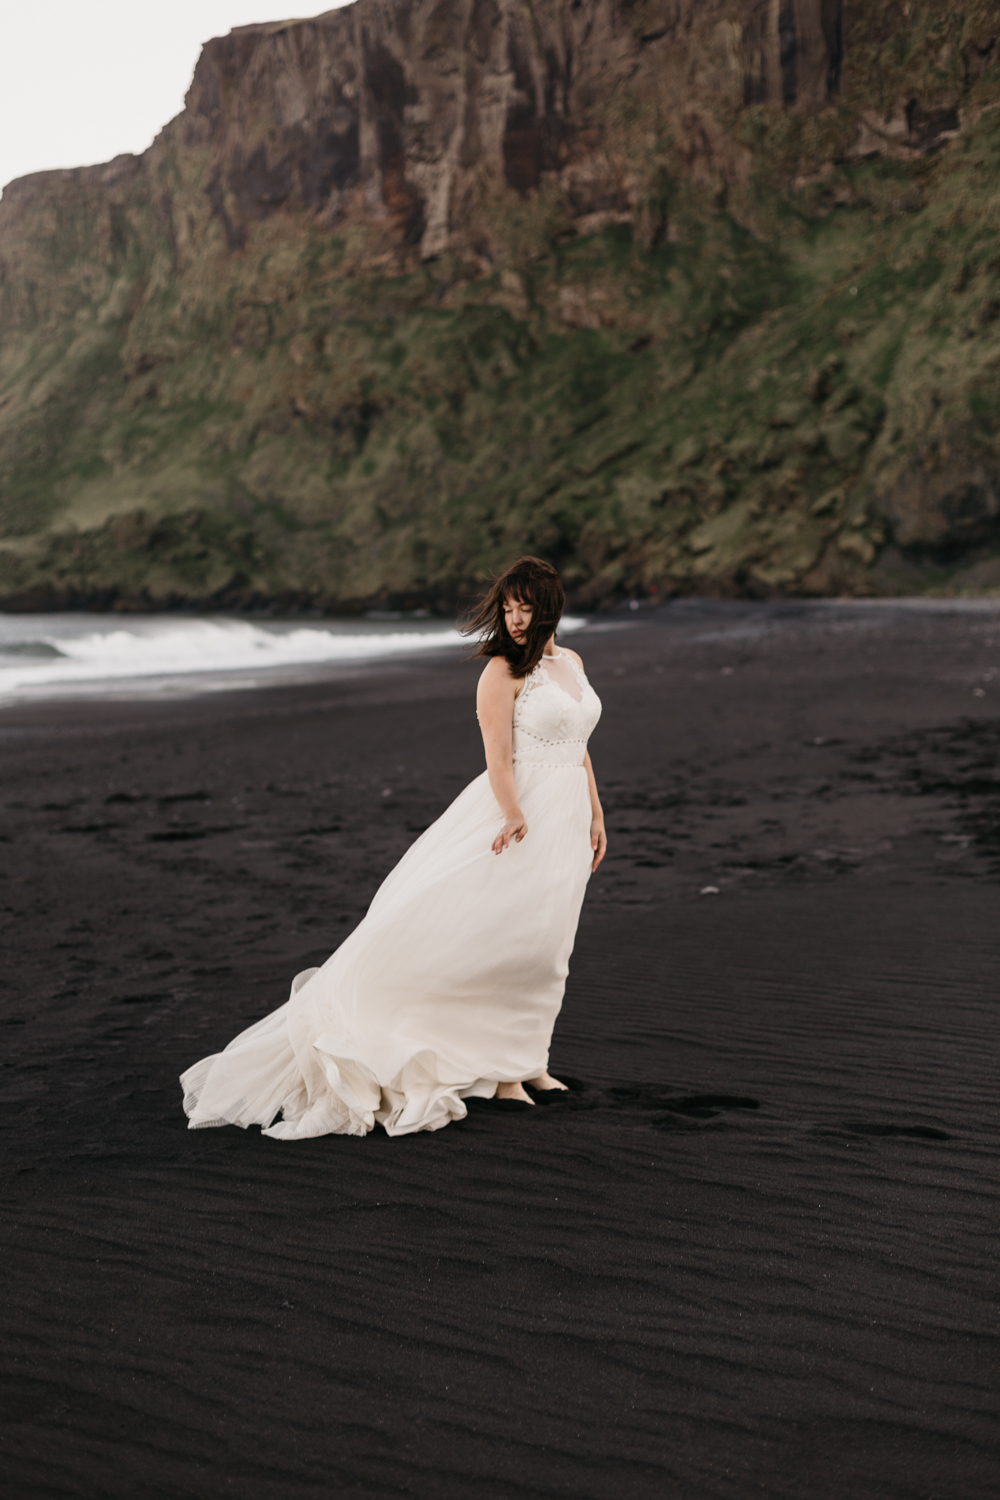 anna szczekutowicz iceland wedding photogapher elopement photographer-75.jpg